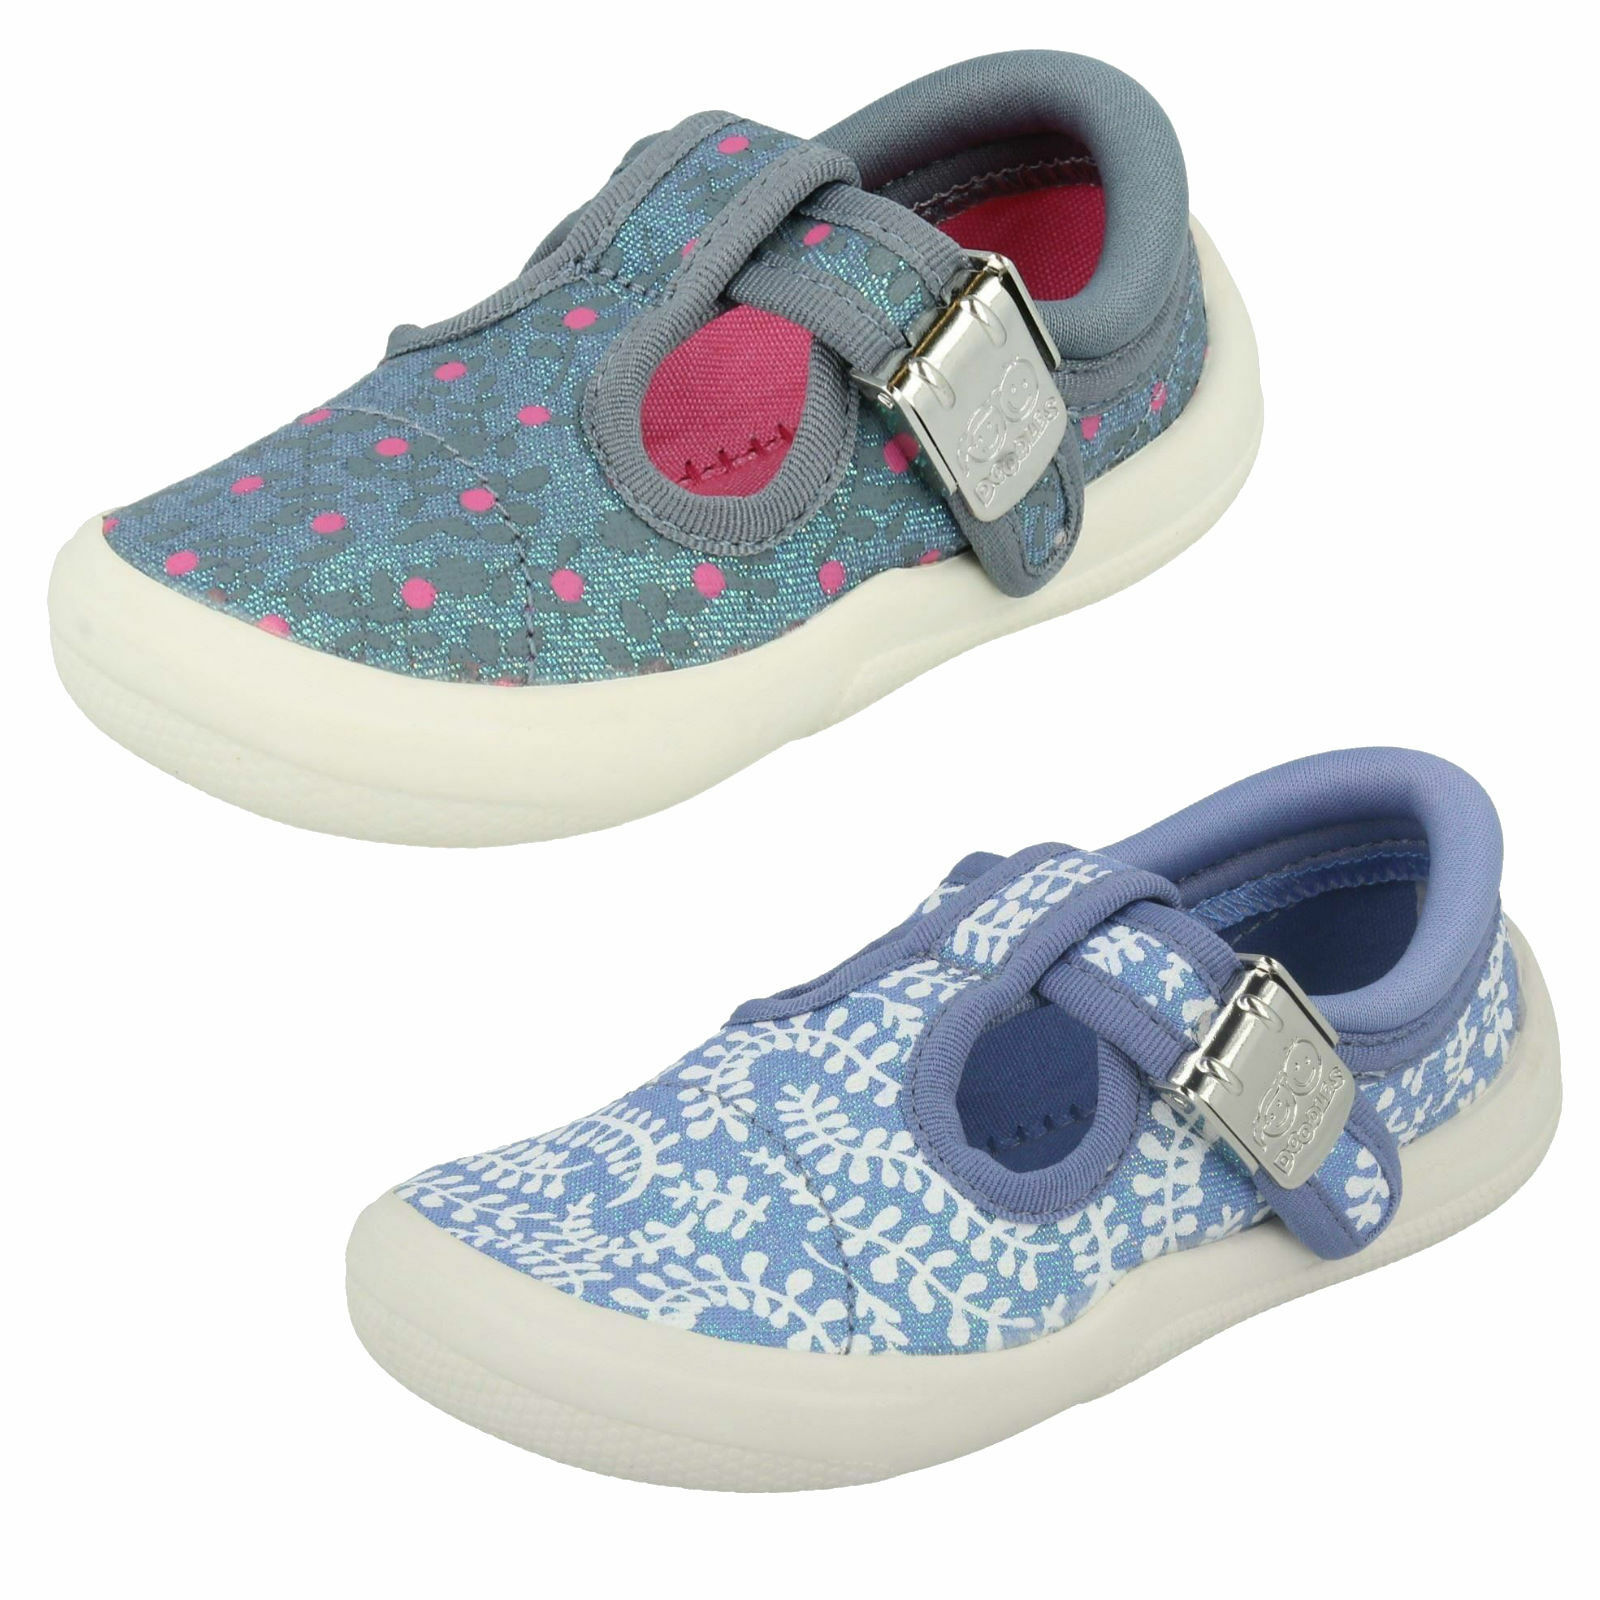 Girls Clarks Canvas Shoes - Briley Bow FST